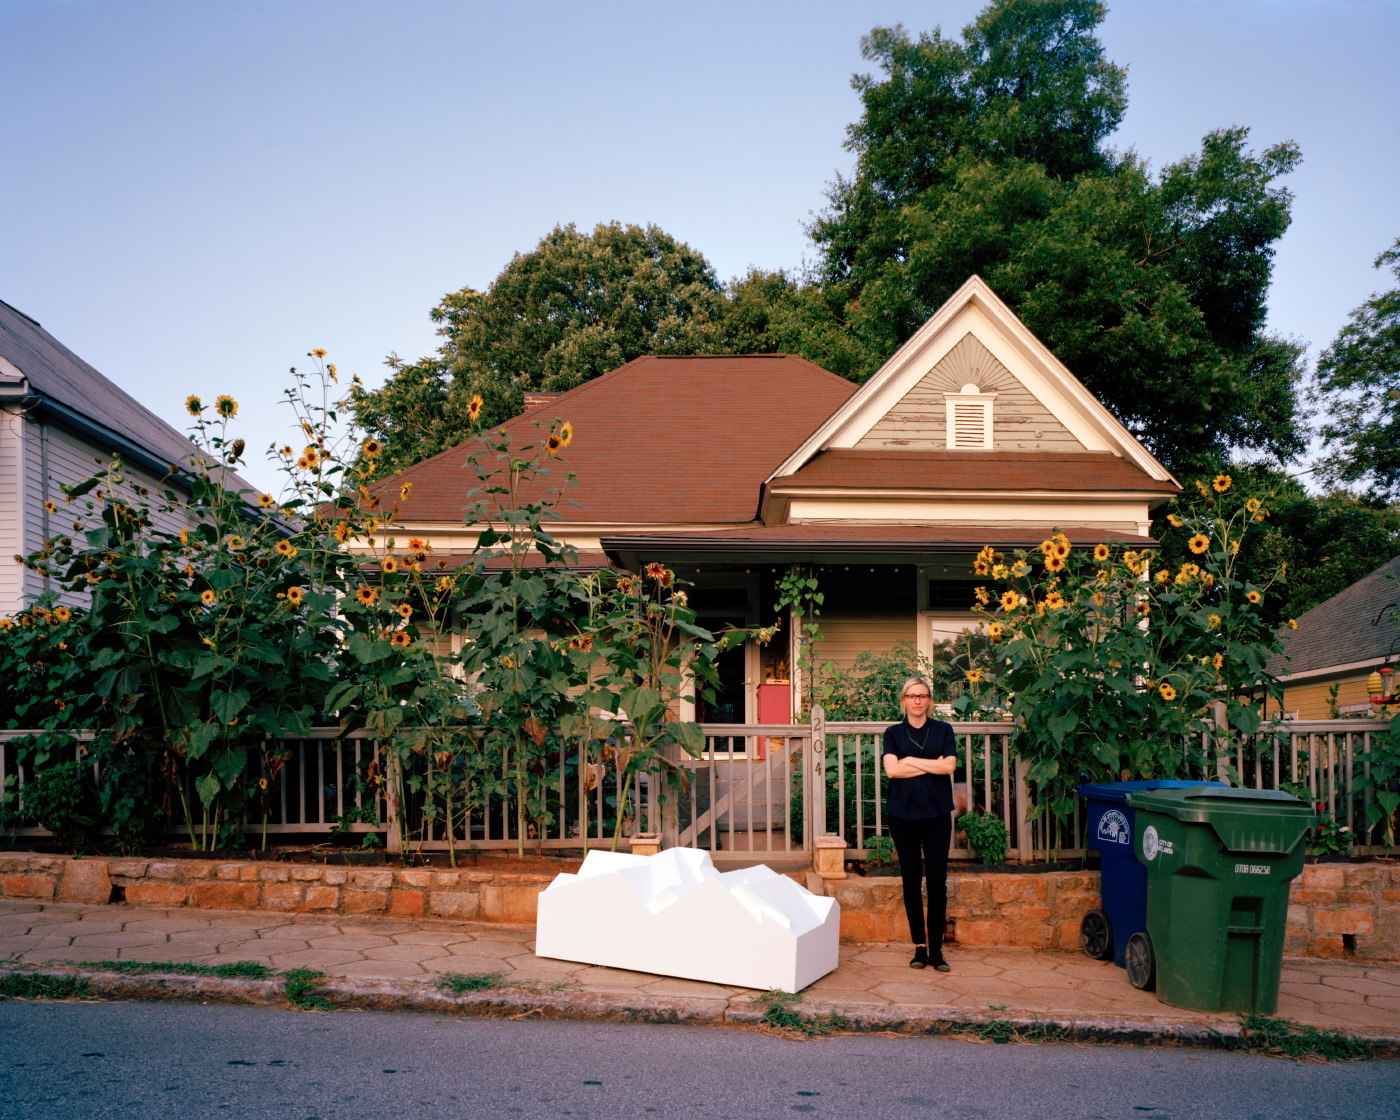 A photo of Jennifer Bonner and a gabled housing model on the sidewalk